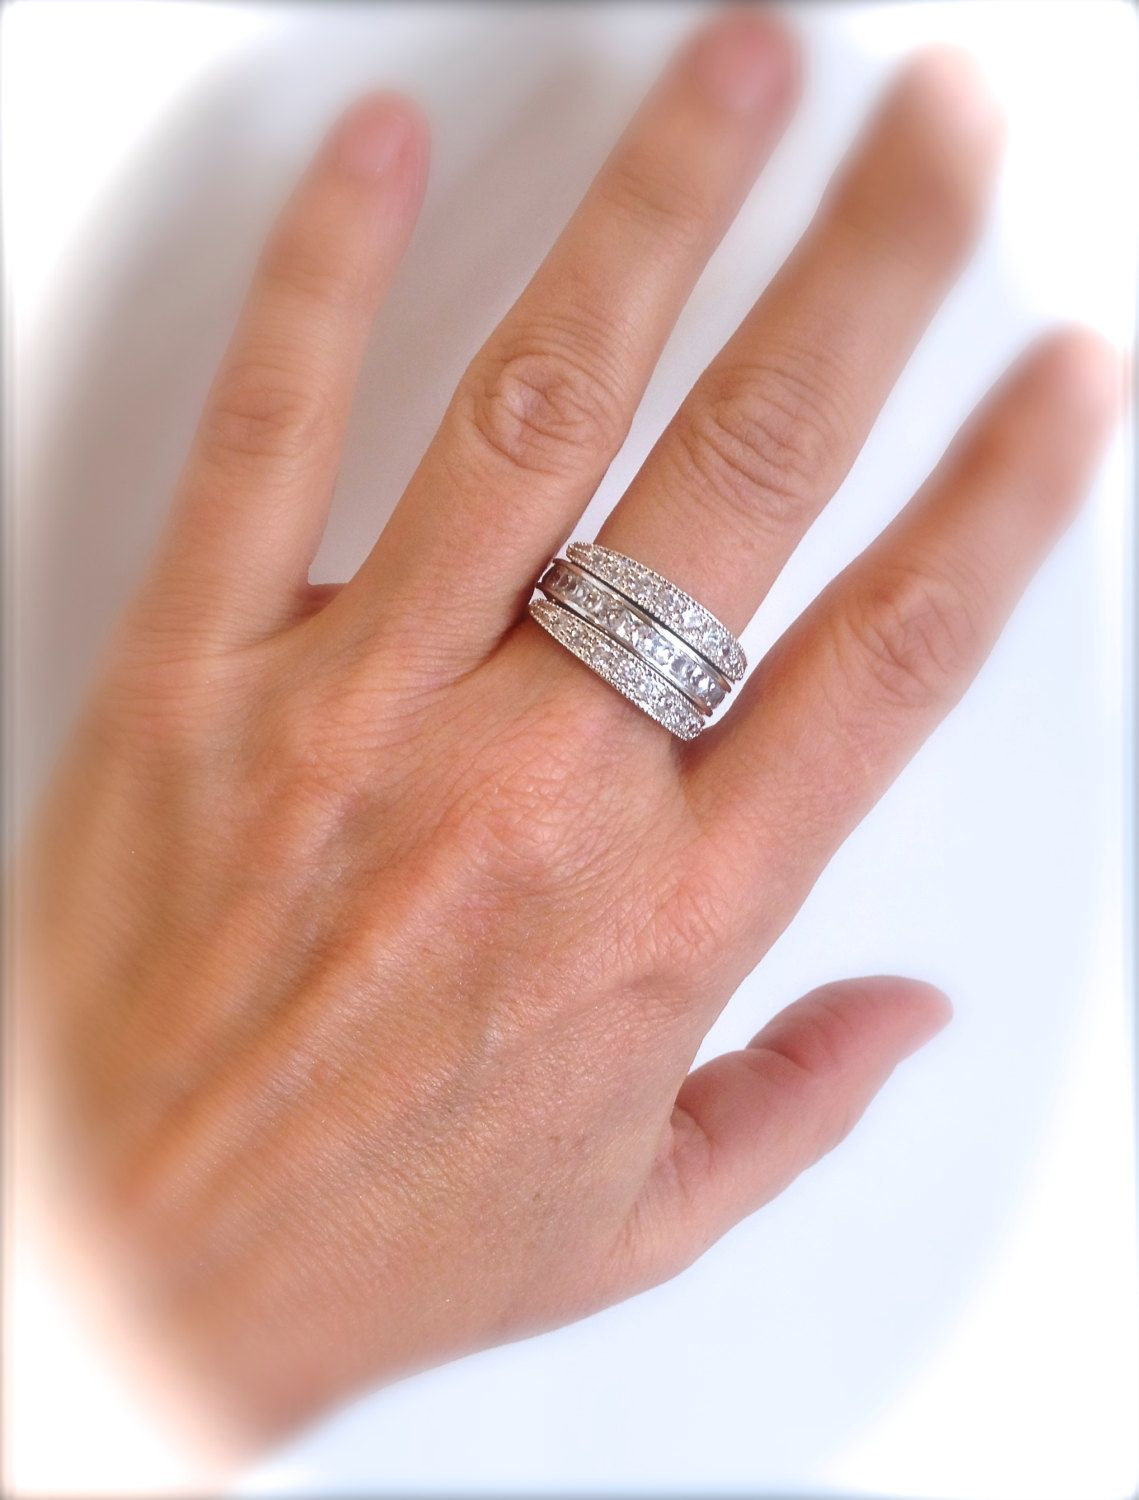 Fantastic Eternity Band Is 3 Rings In One The Genius Design